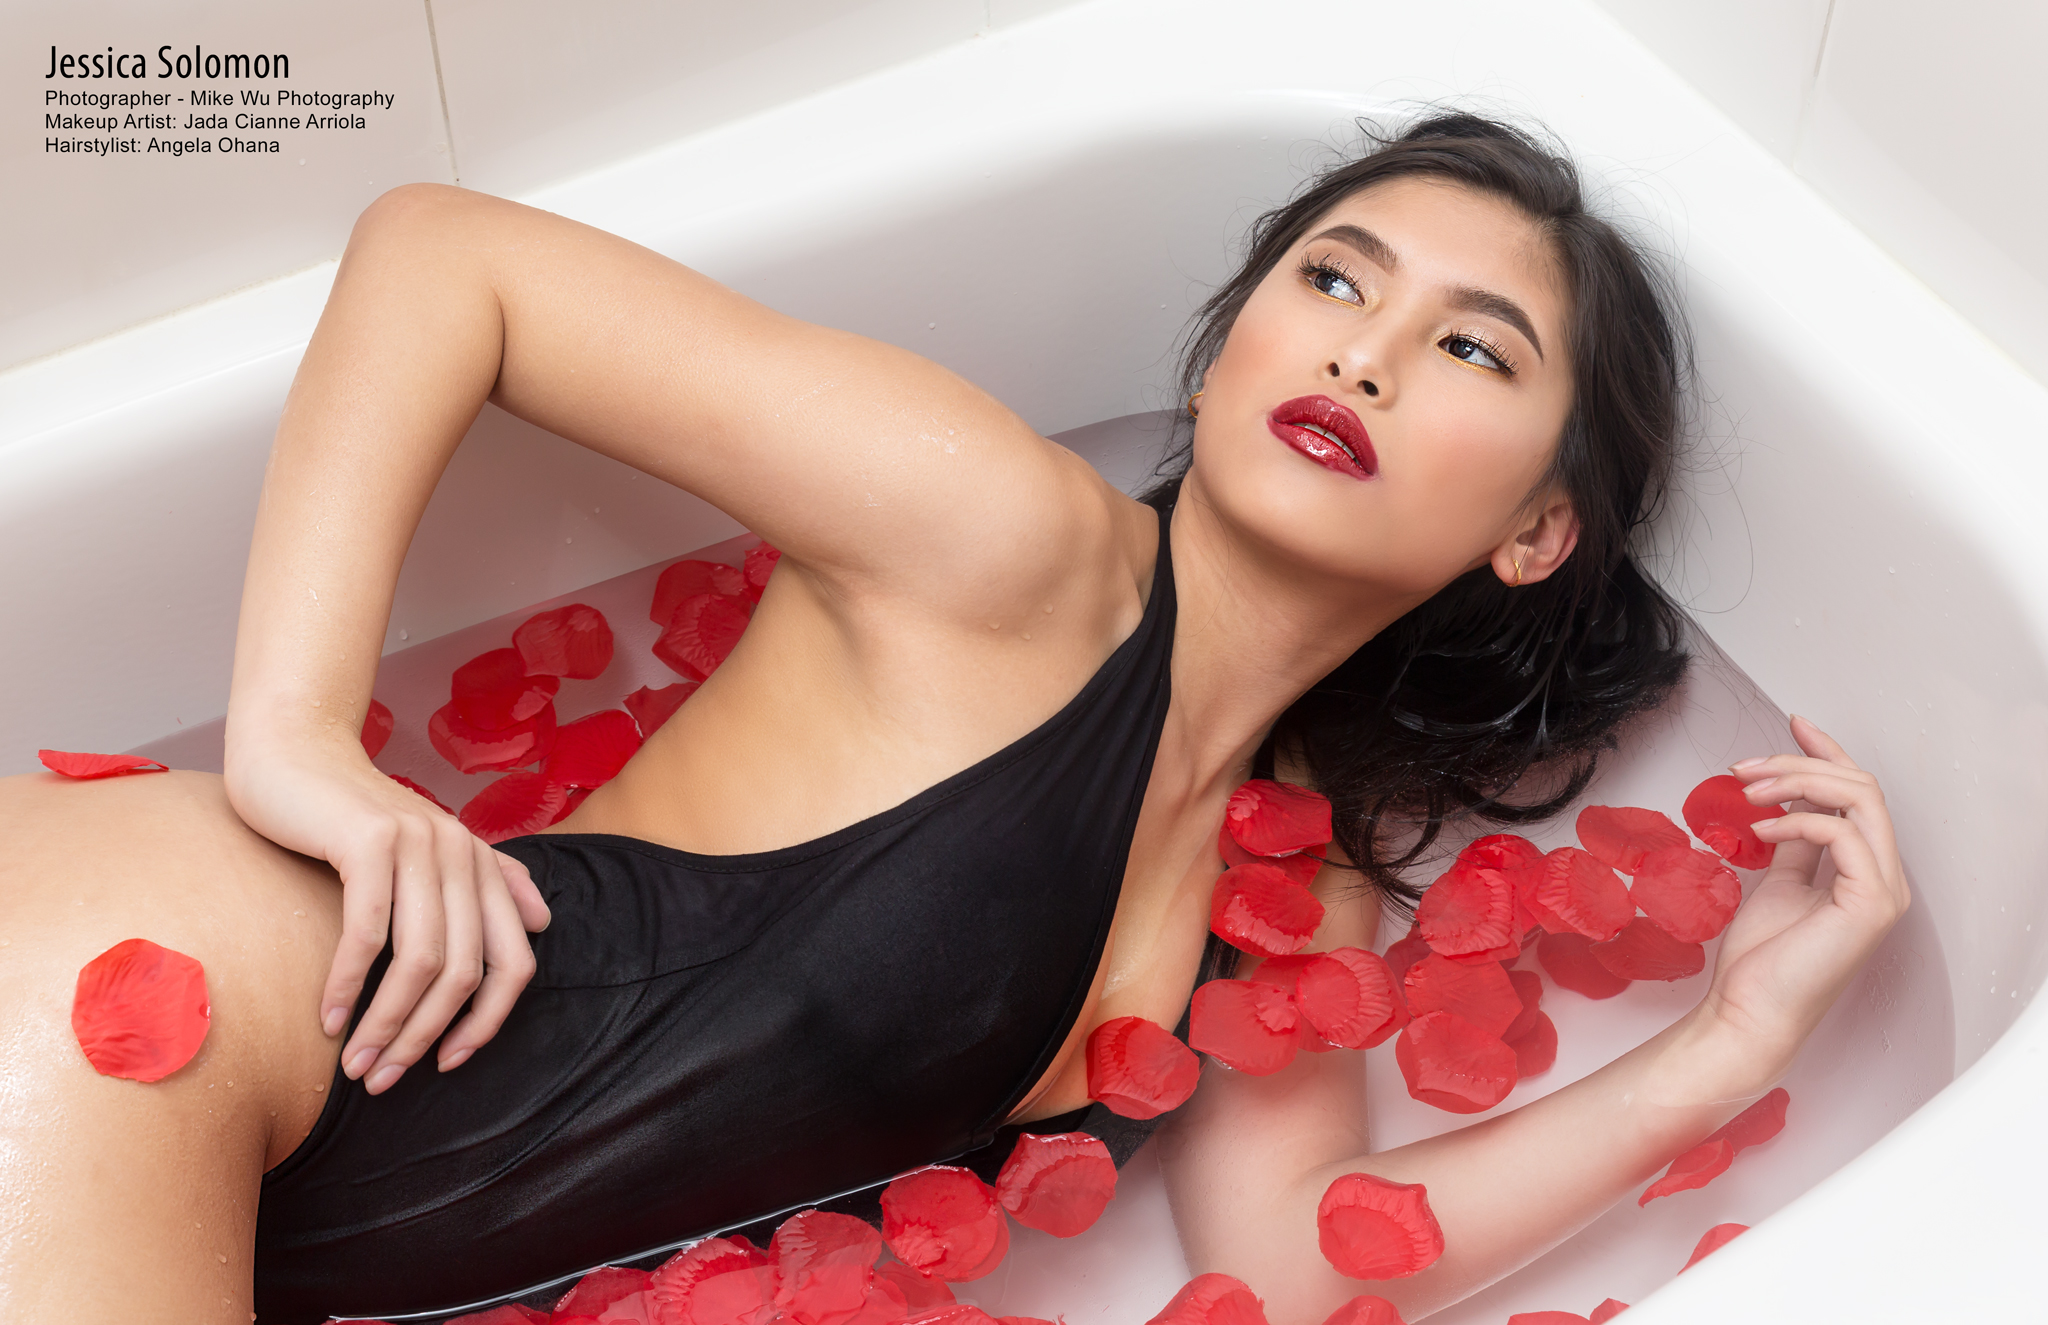 bathtub, rose petals, red, publication, surreal beauty magazine, swimsuit, sexy, editorial, beauty, makeup, hair, wet